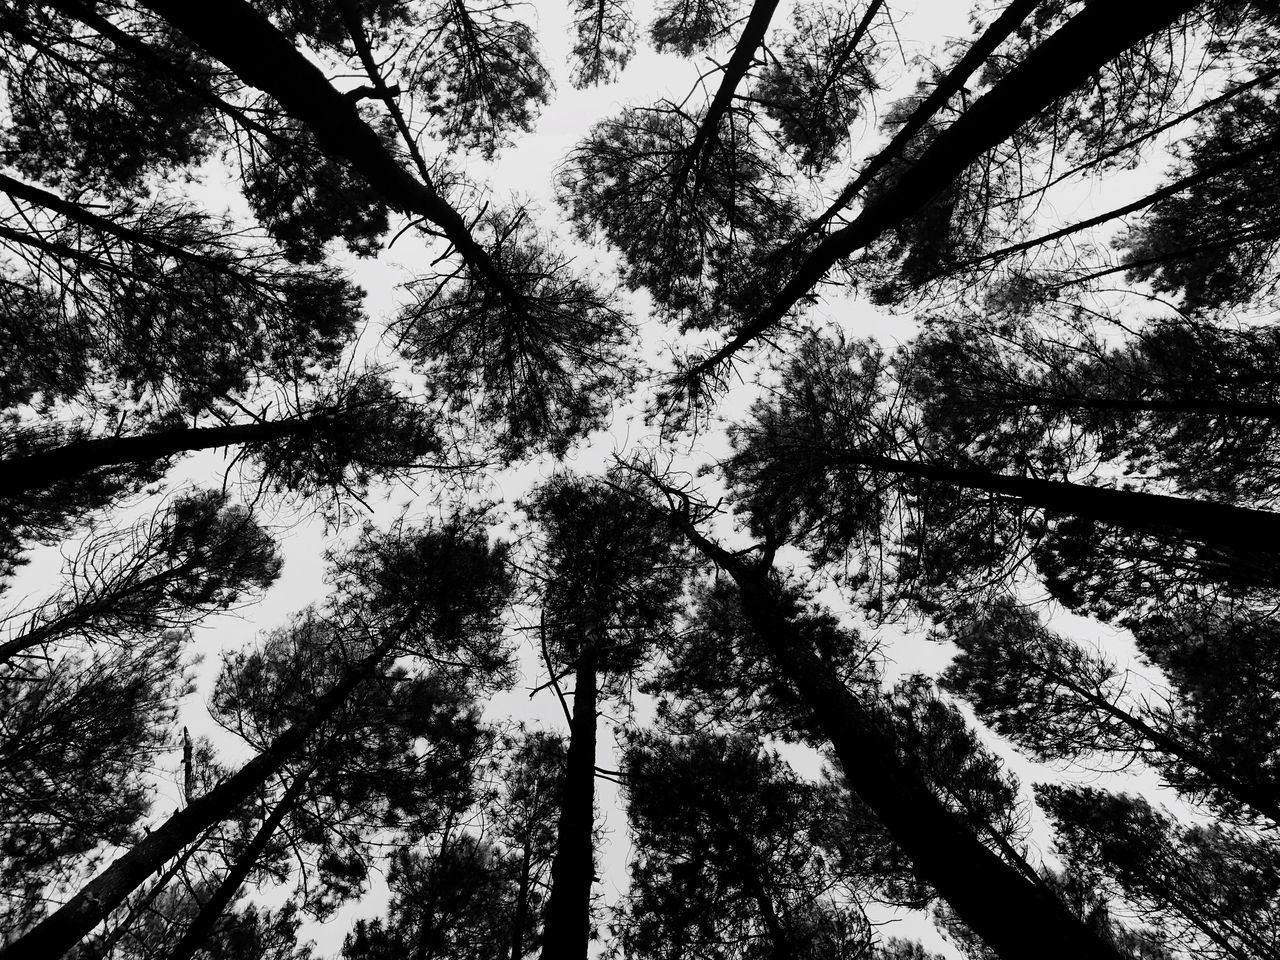 pattern pine forest sky background Tree Low Angle View Tree Trunk Nature Outdoors Beauty In Nature Branch Forest Tree Canopy  Sky Scenics Pattern Background Blackandwhite Black And White Photography Pine Tree Forest Path